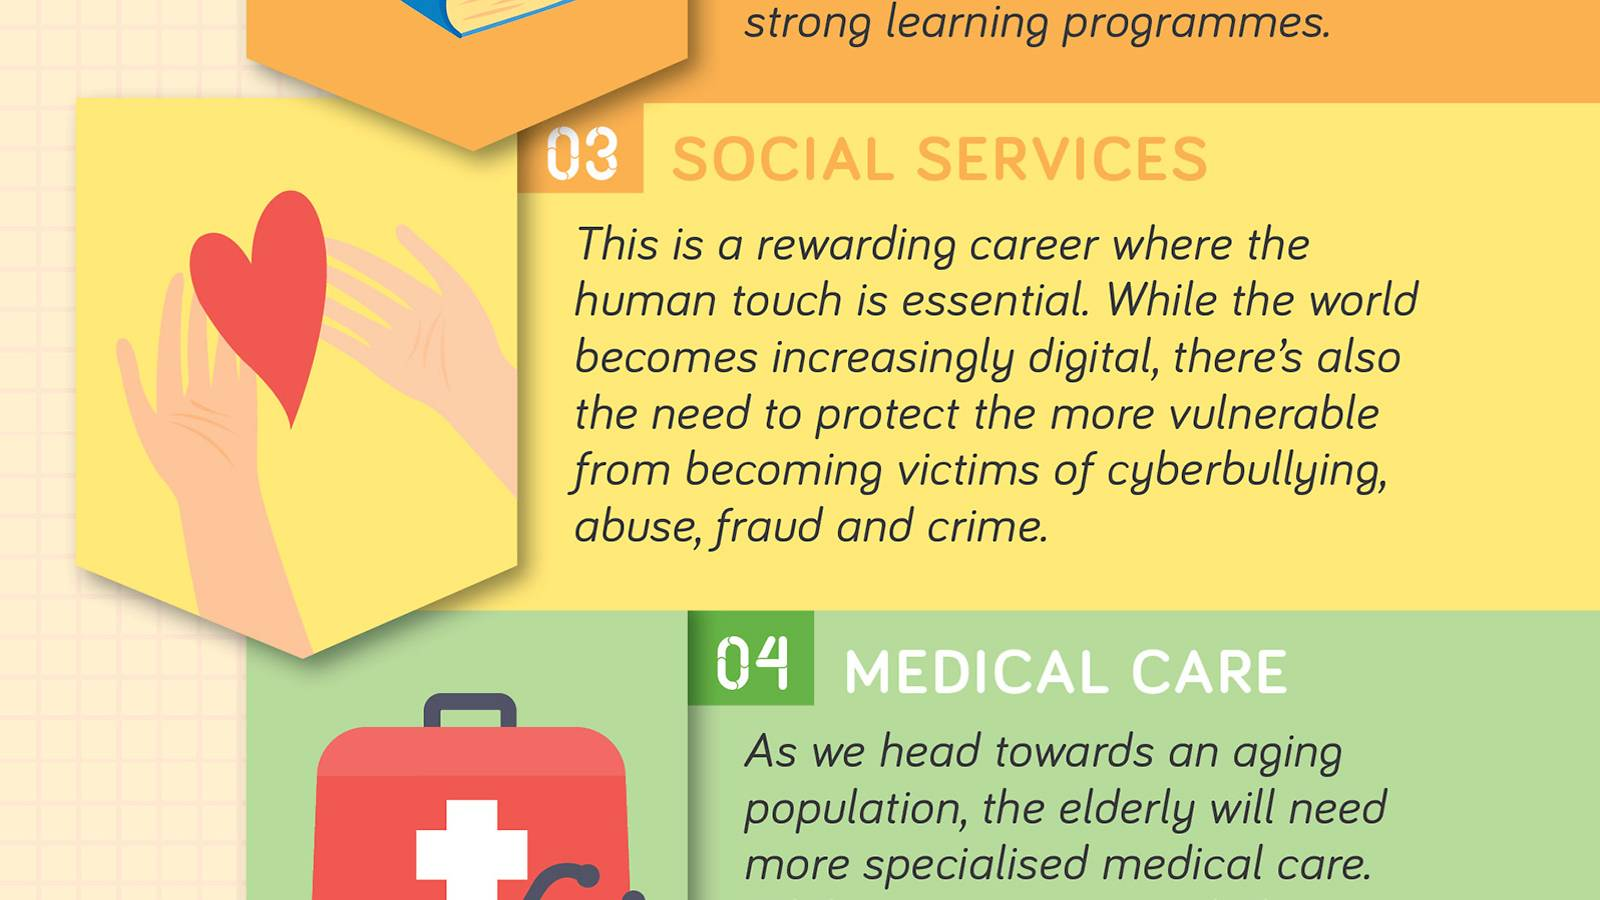 kids-Career-Trends-in-20-years-INFOGRAPHIC3